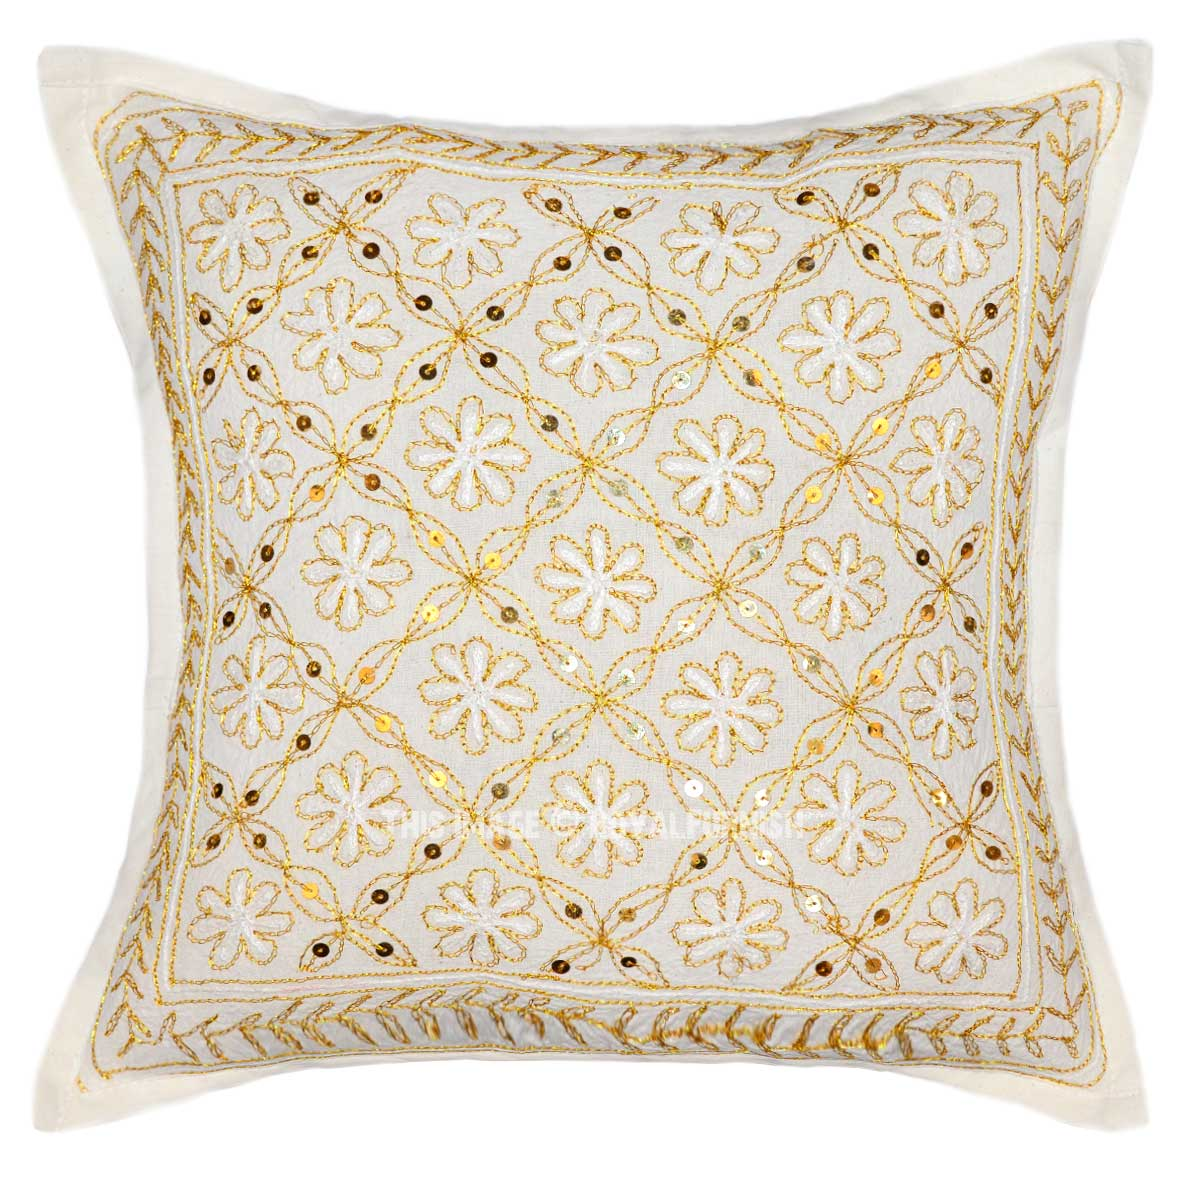 Pillow with embroidery 76